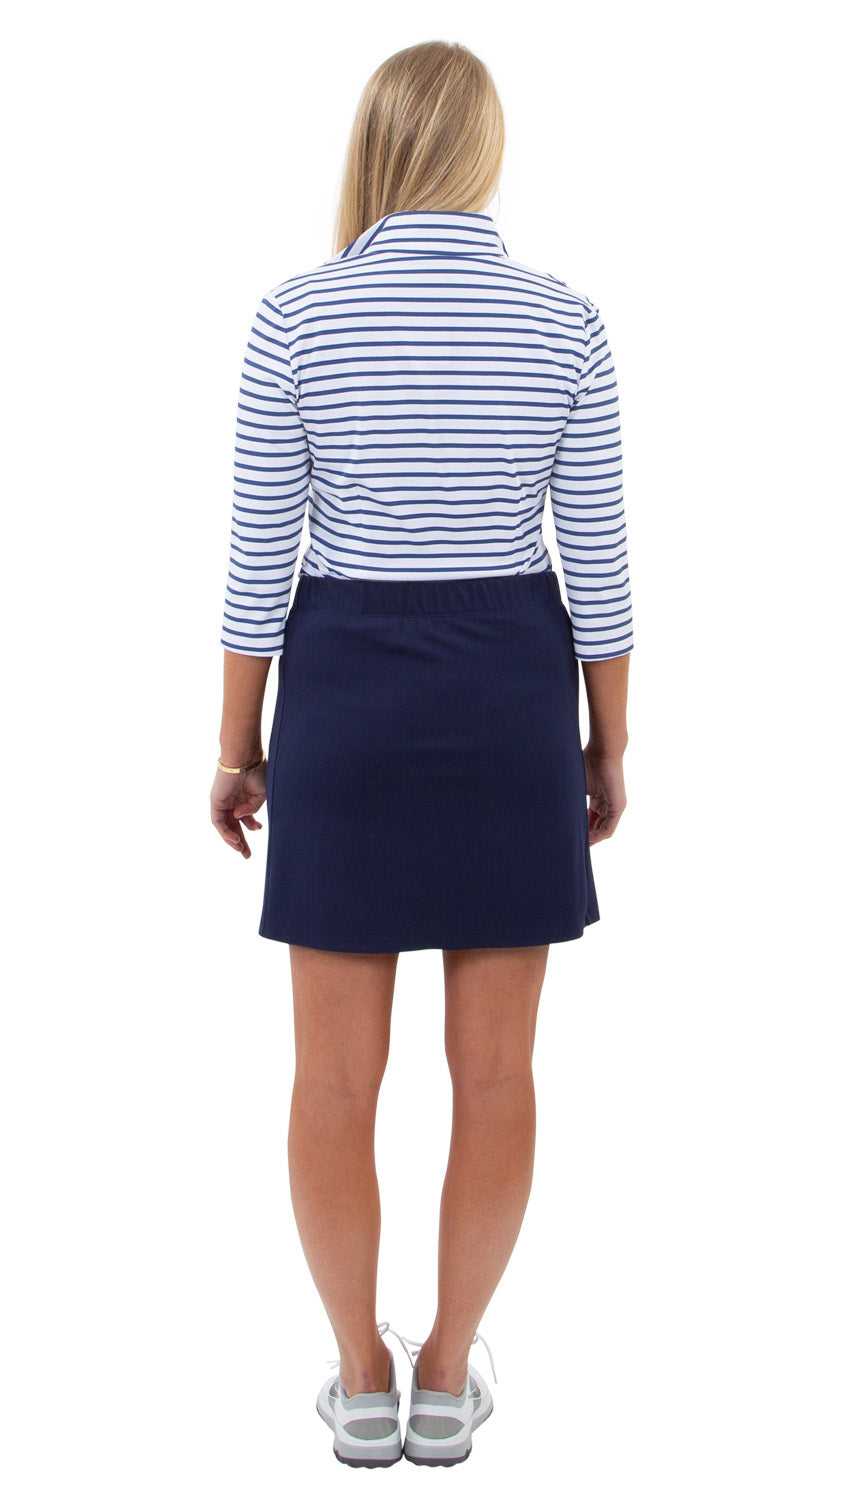 Britt 3/4 Sleeve Top - Summer Stripe